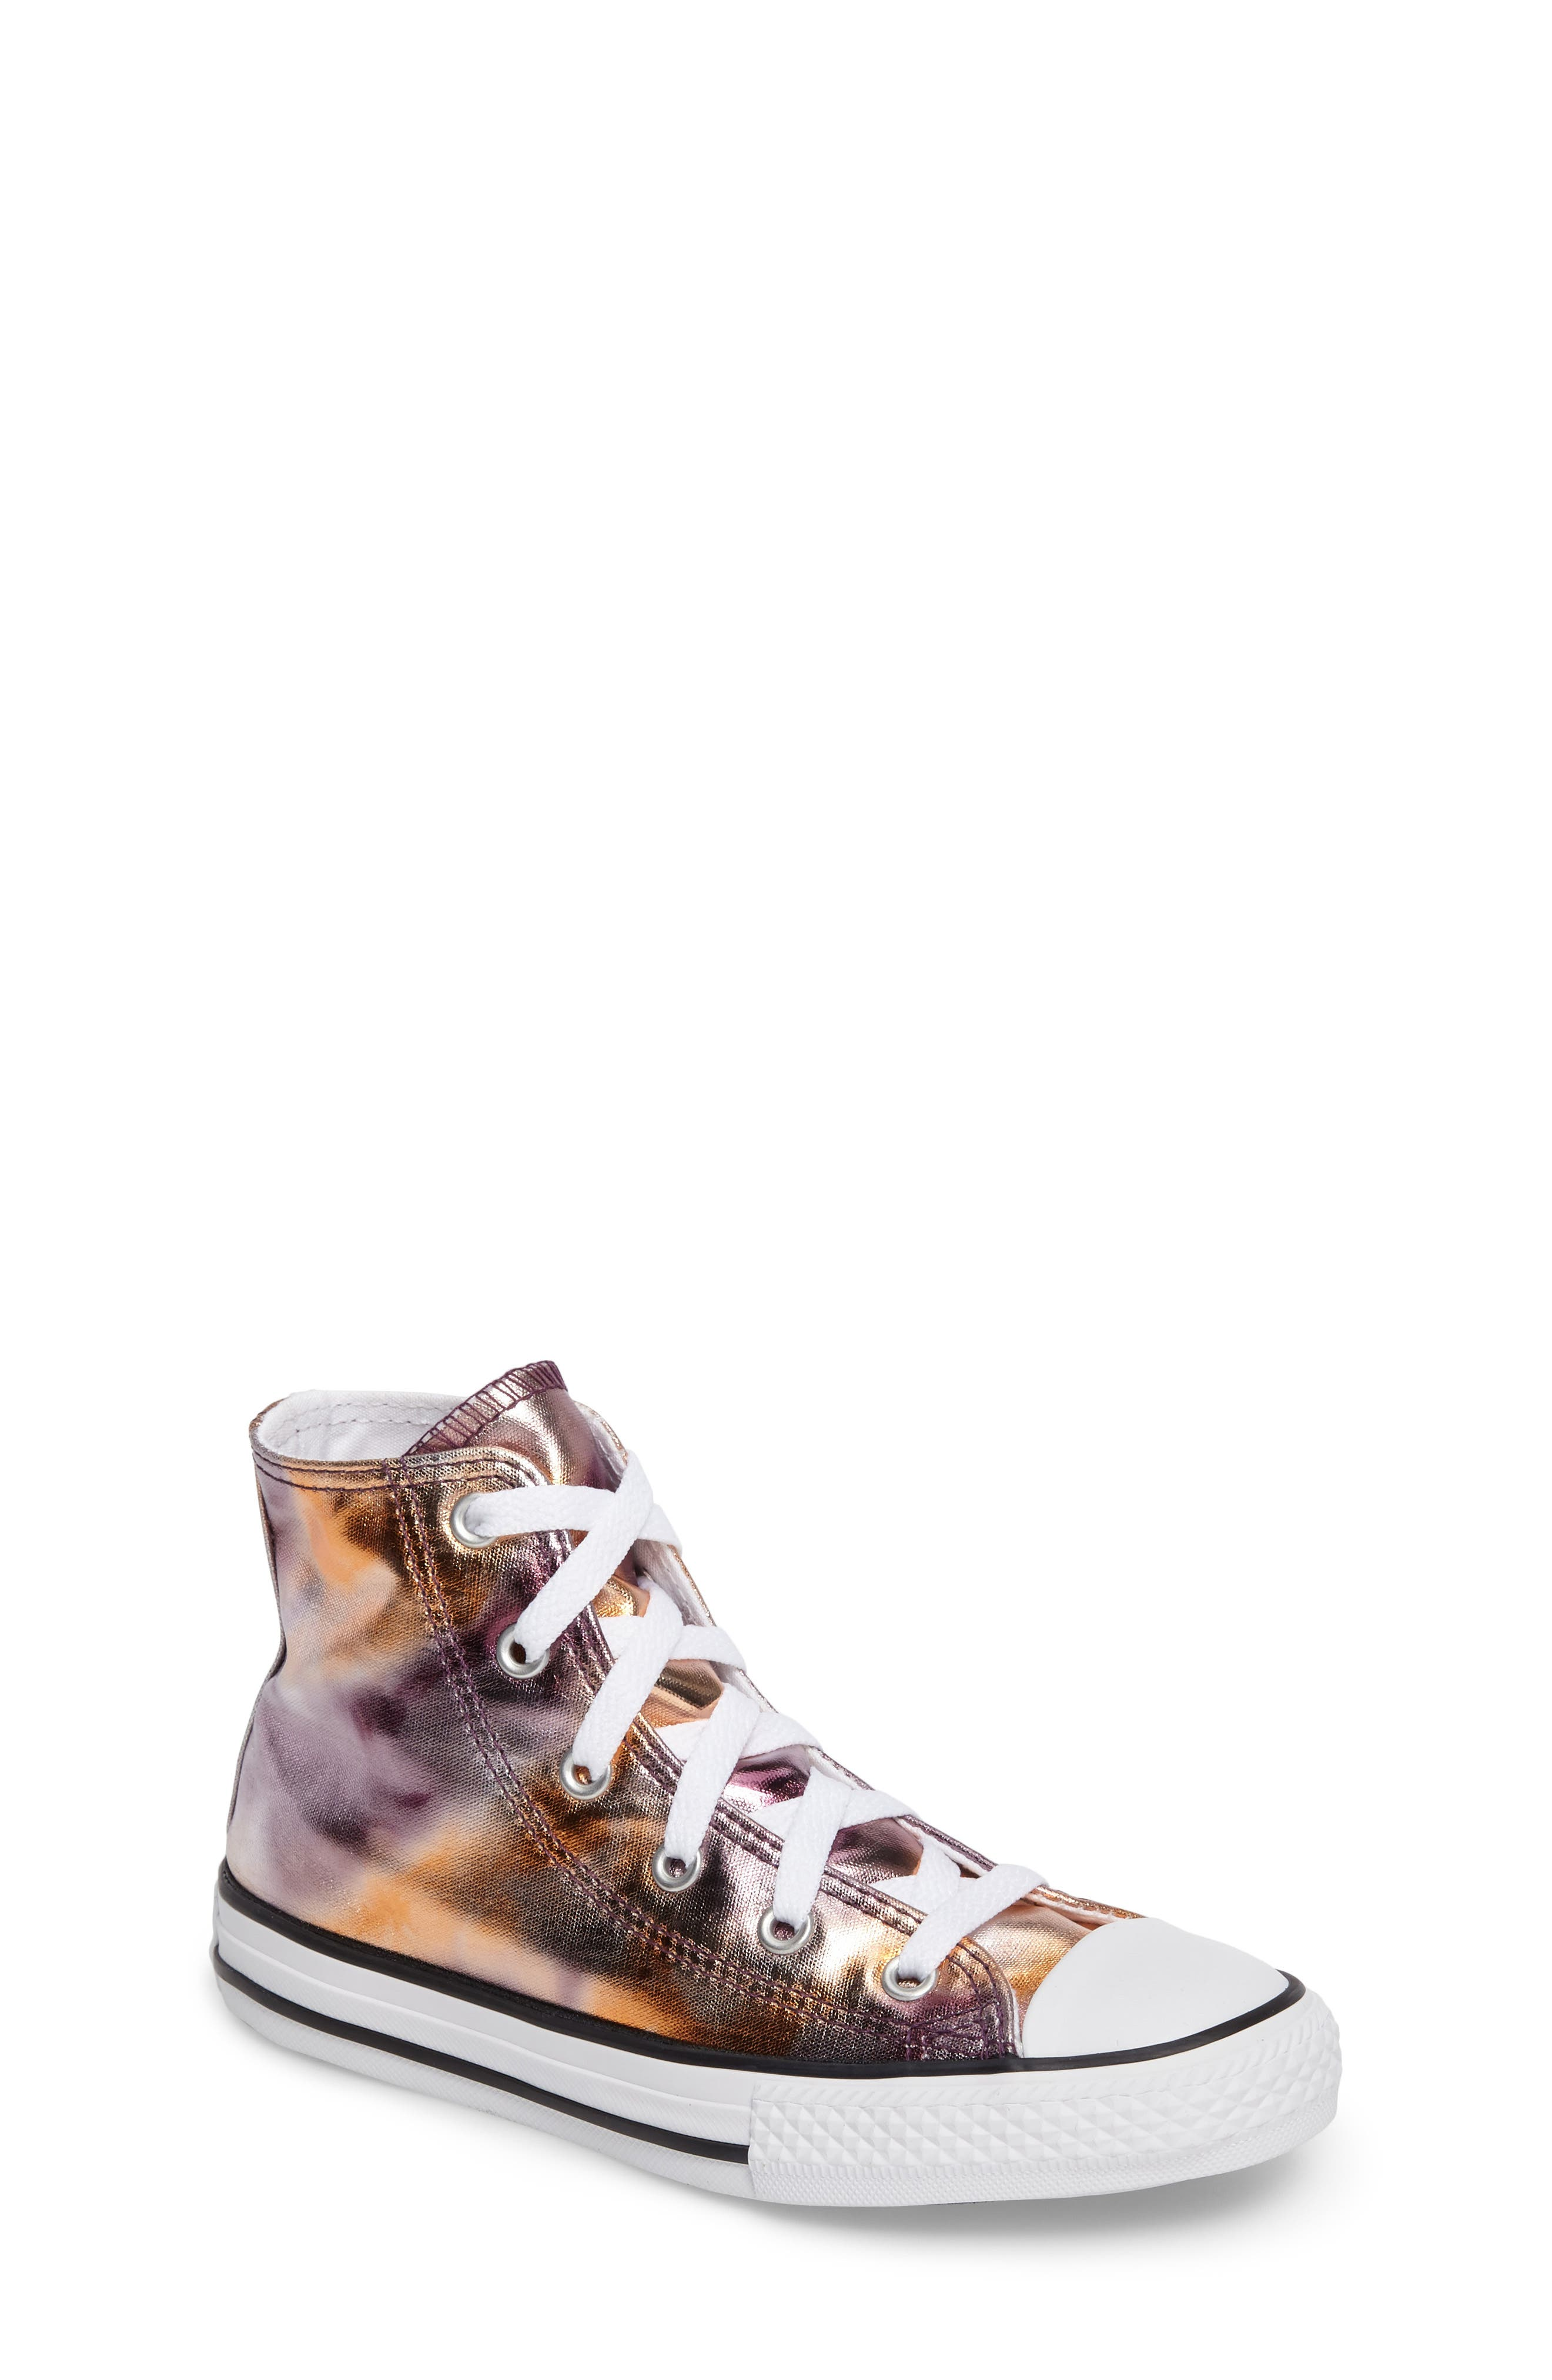 Chuck Taylor<sup>®</sup> All Star<sup>®</sup> Metallic High Top Sneaker,                             Main thumbnail 1, color,                             220